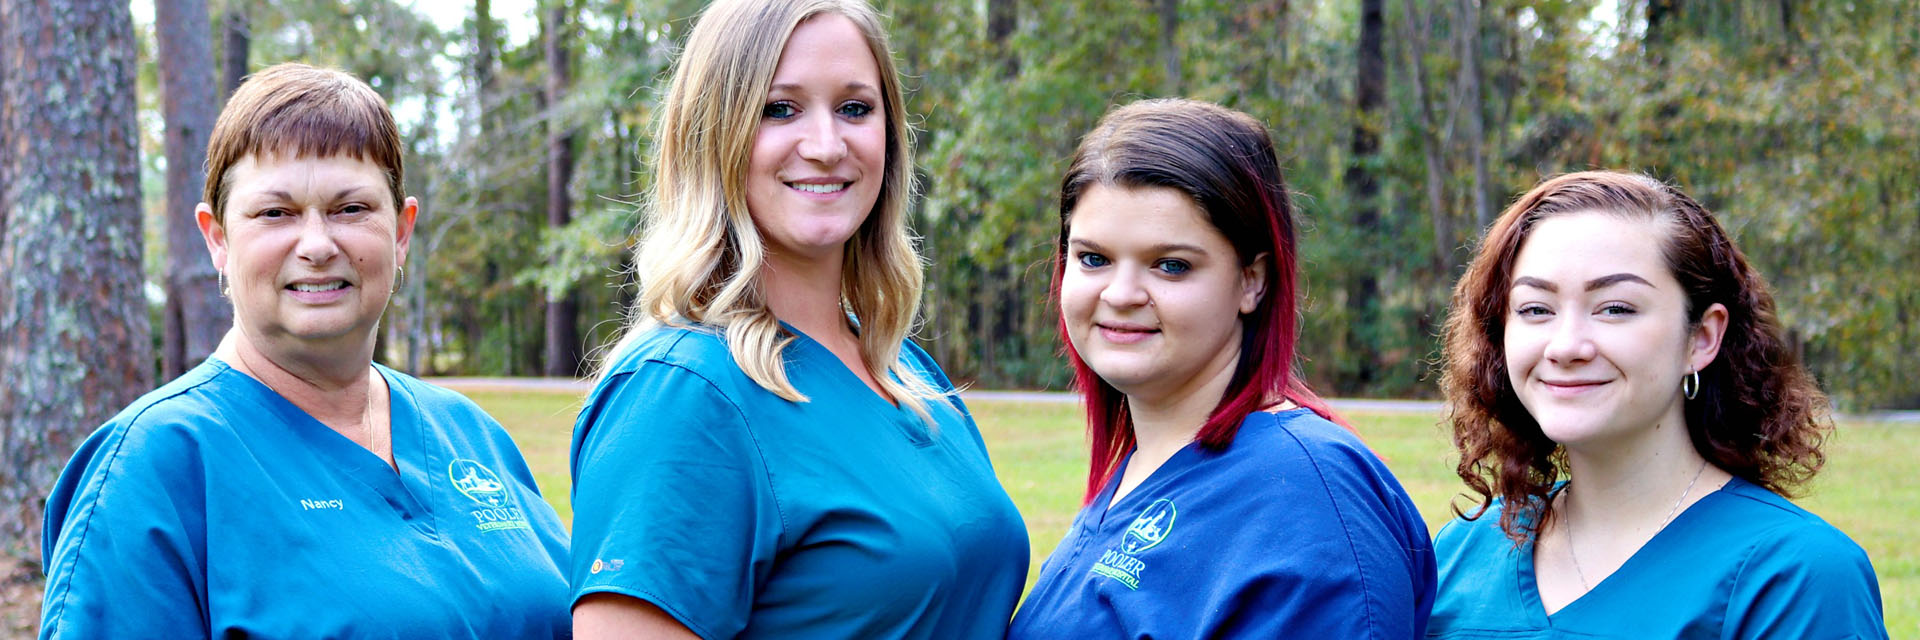 Pooler Veterinary Hospital Staff